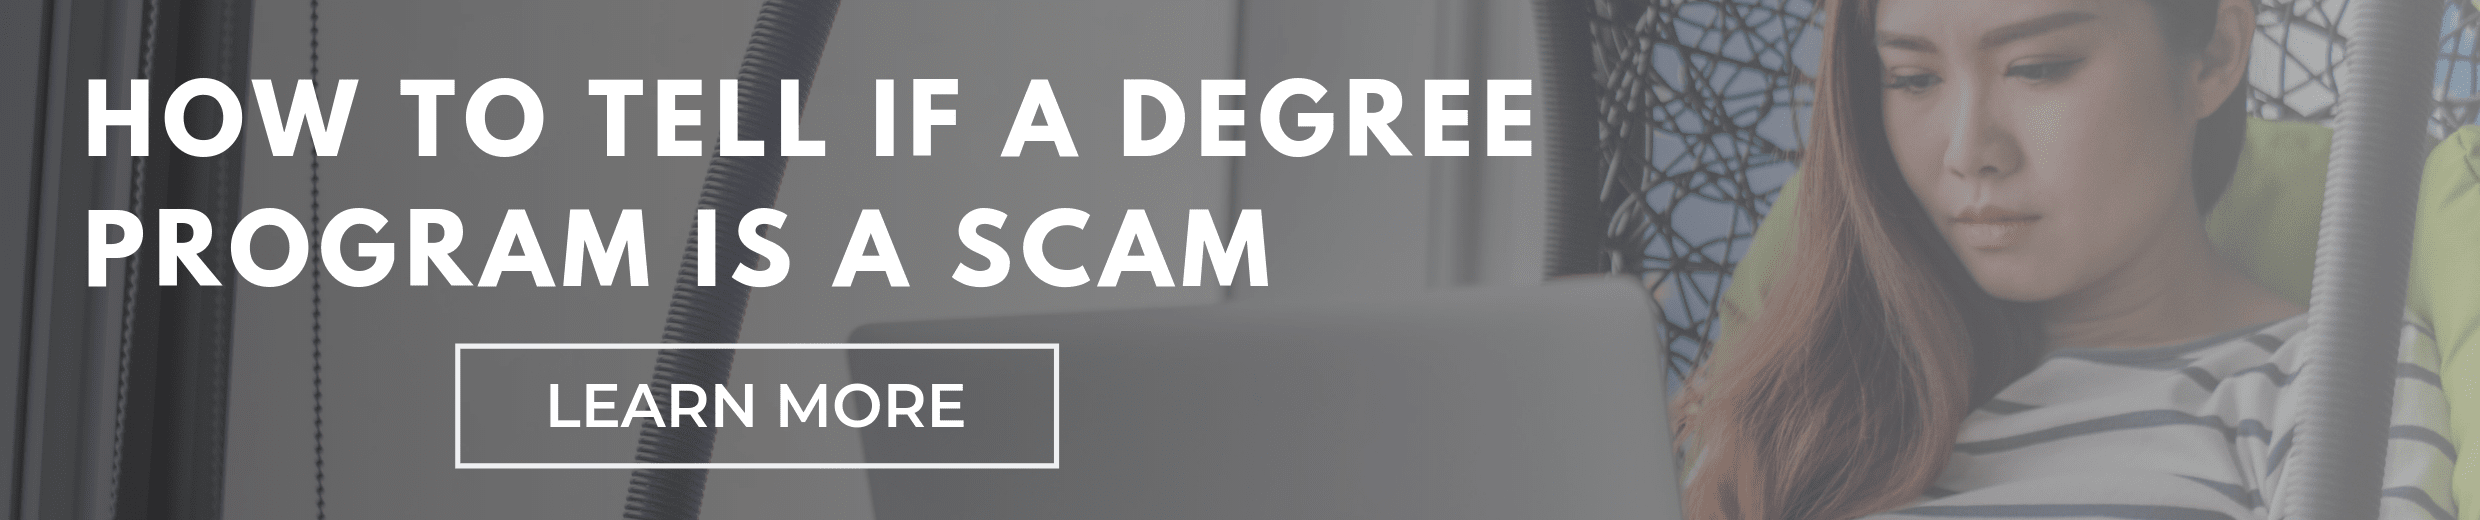 How Can I Tell if a Degree Program is Legitimate or a Scam?